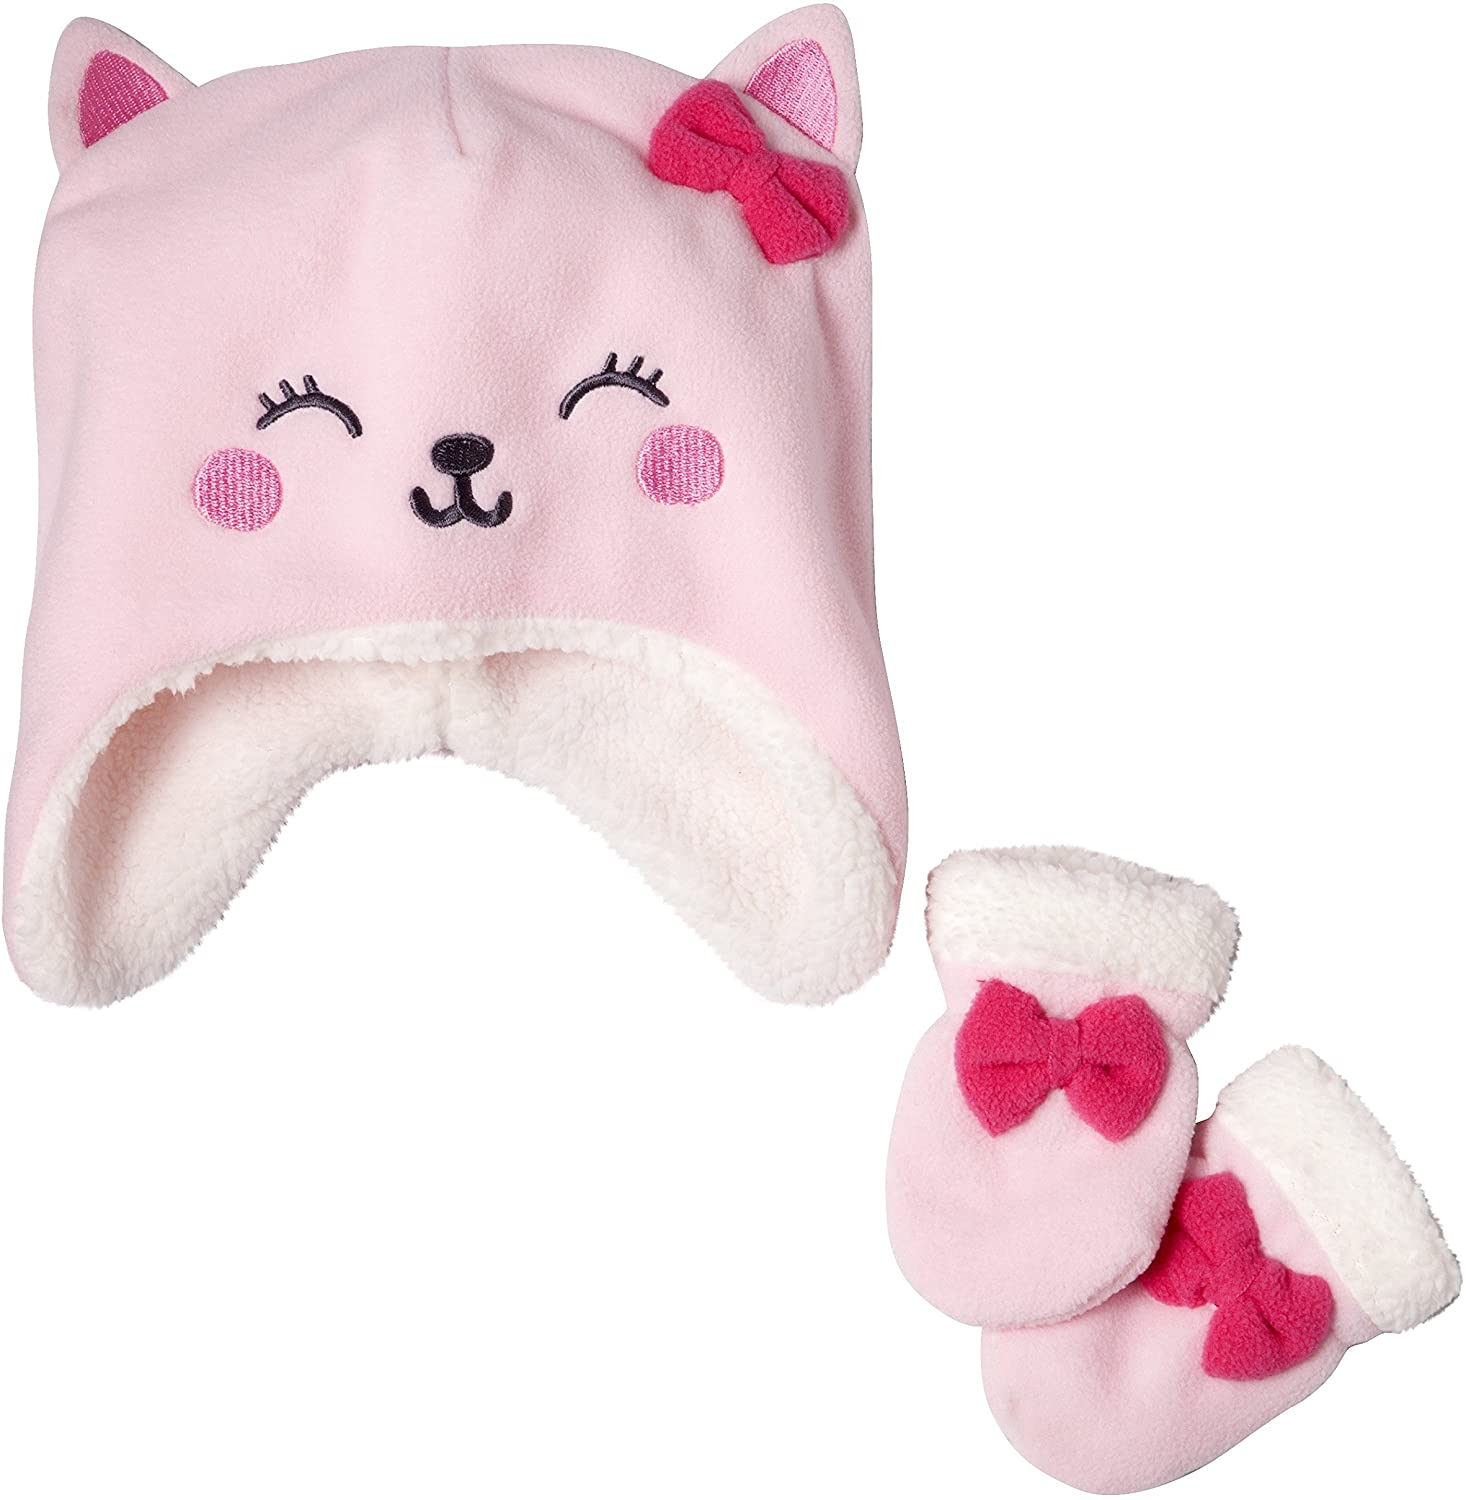 Carter's Just One You Baby Fleece Hat and Mitten Set - Kitty